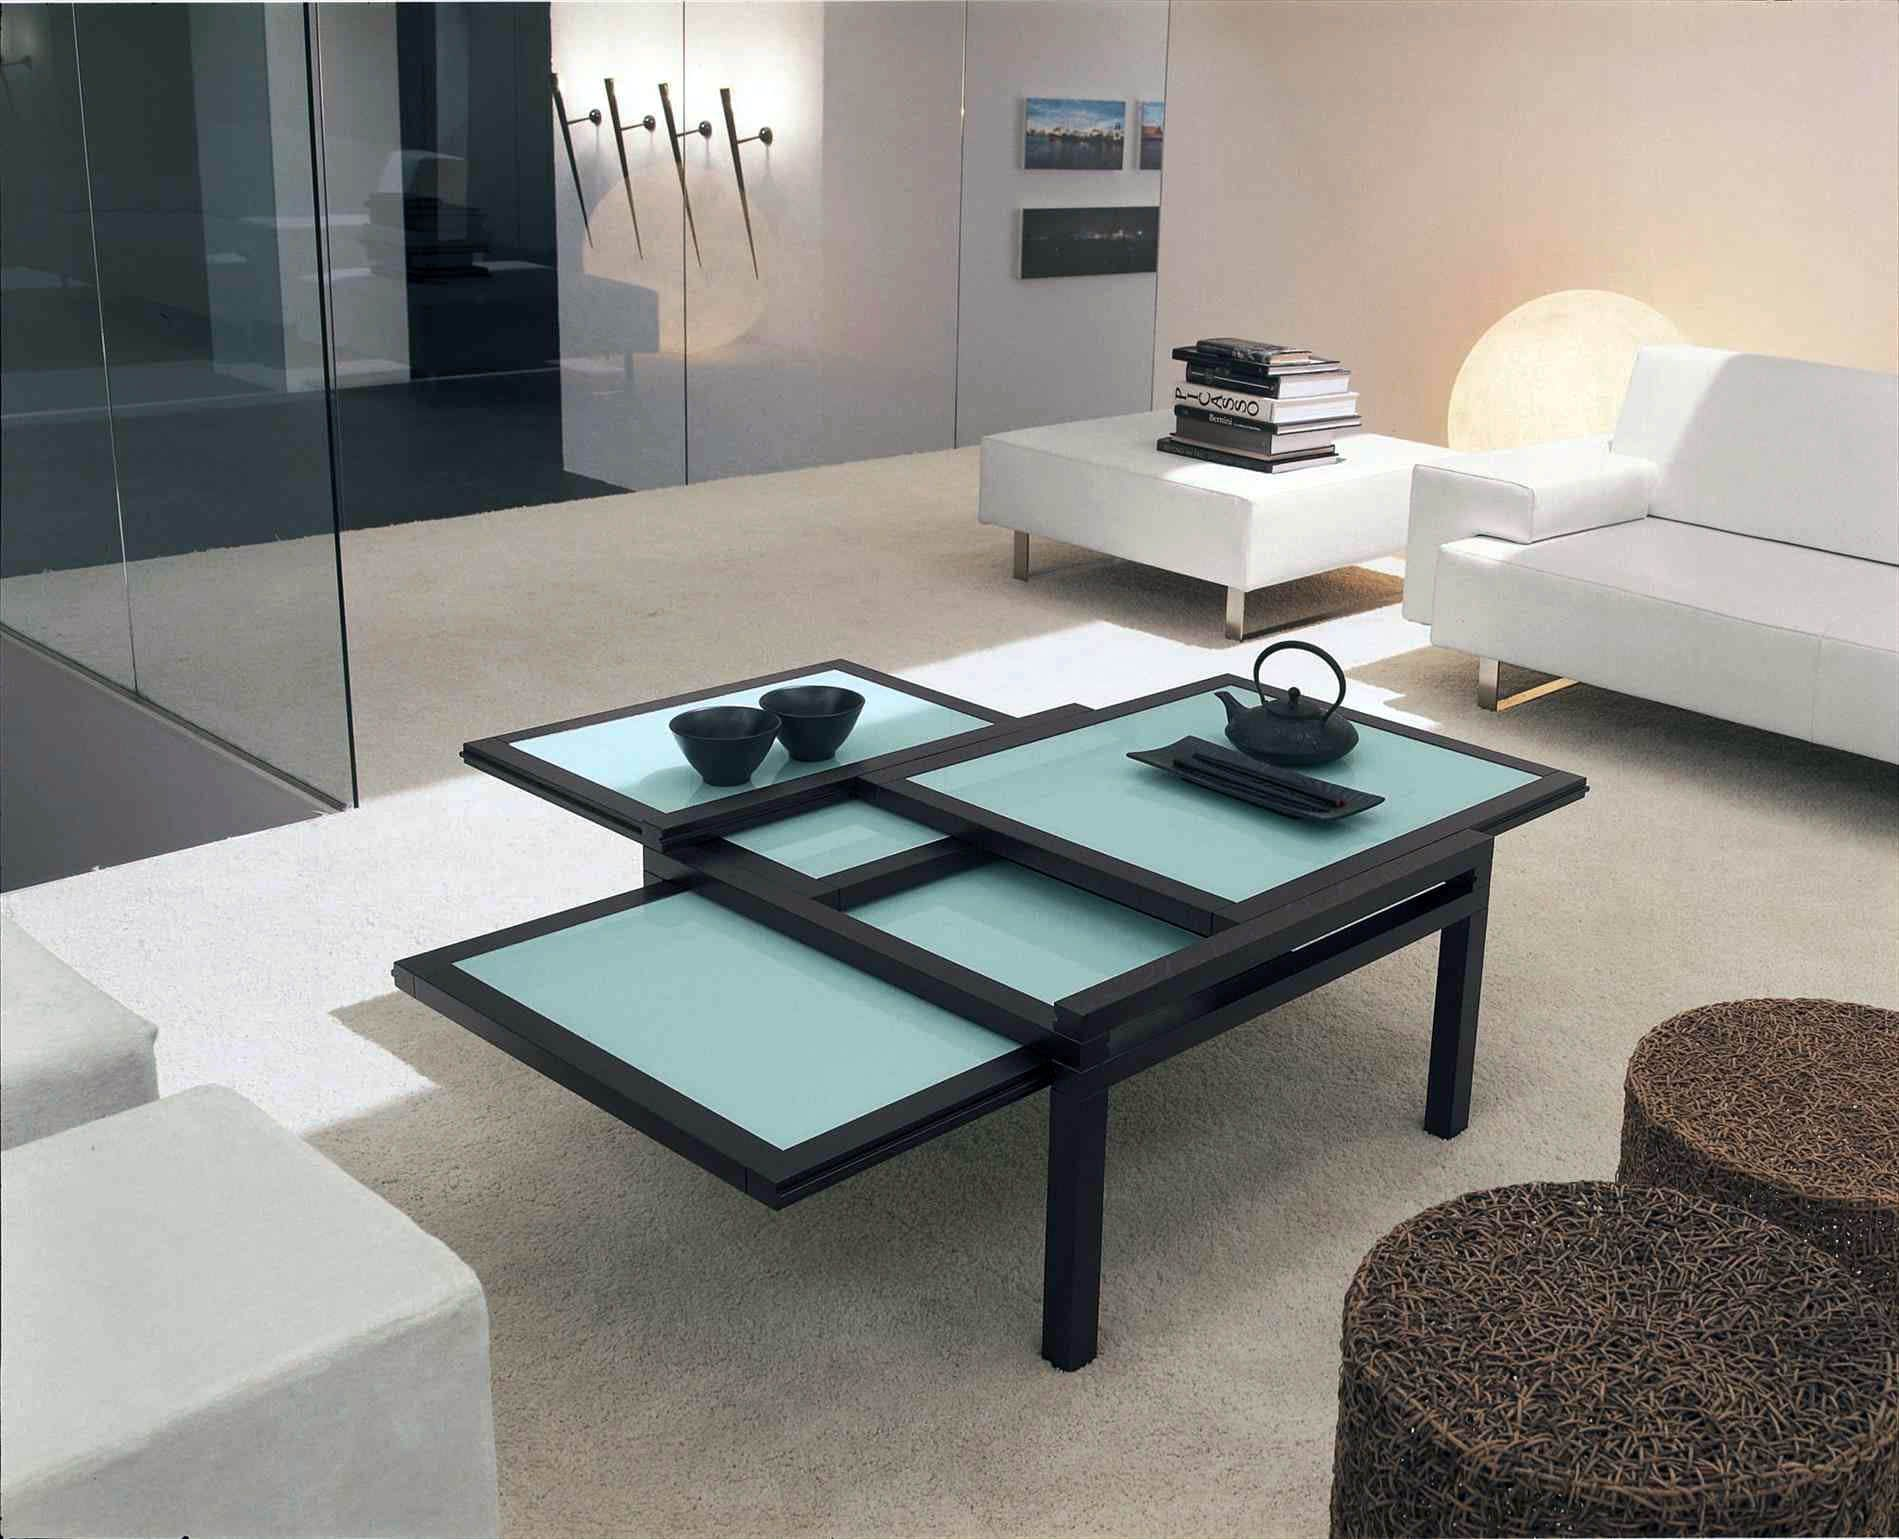 Sophisticated Japanese Dining Table Suggestions With Images